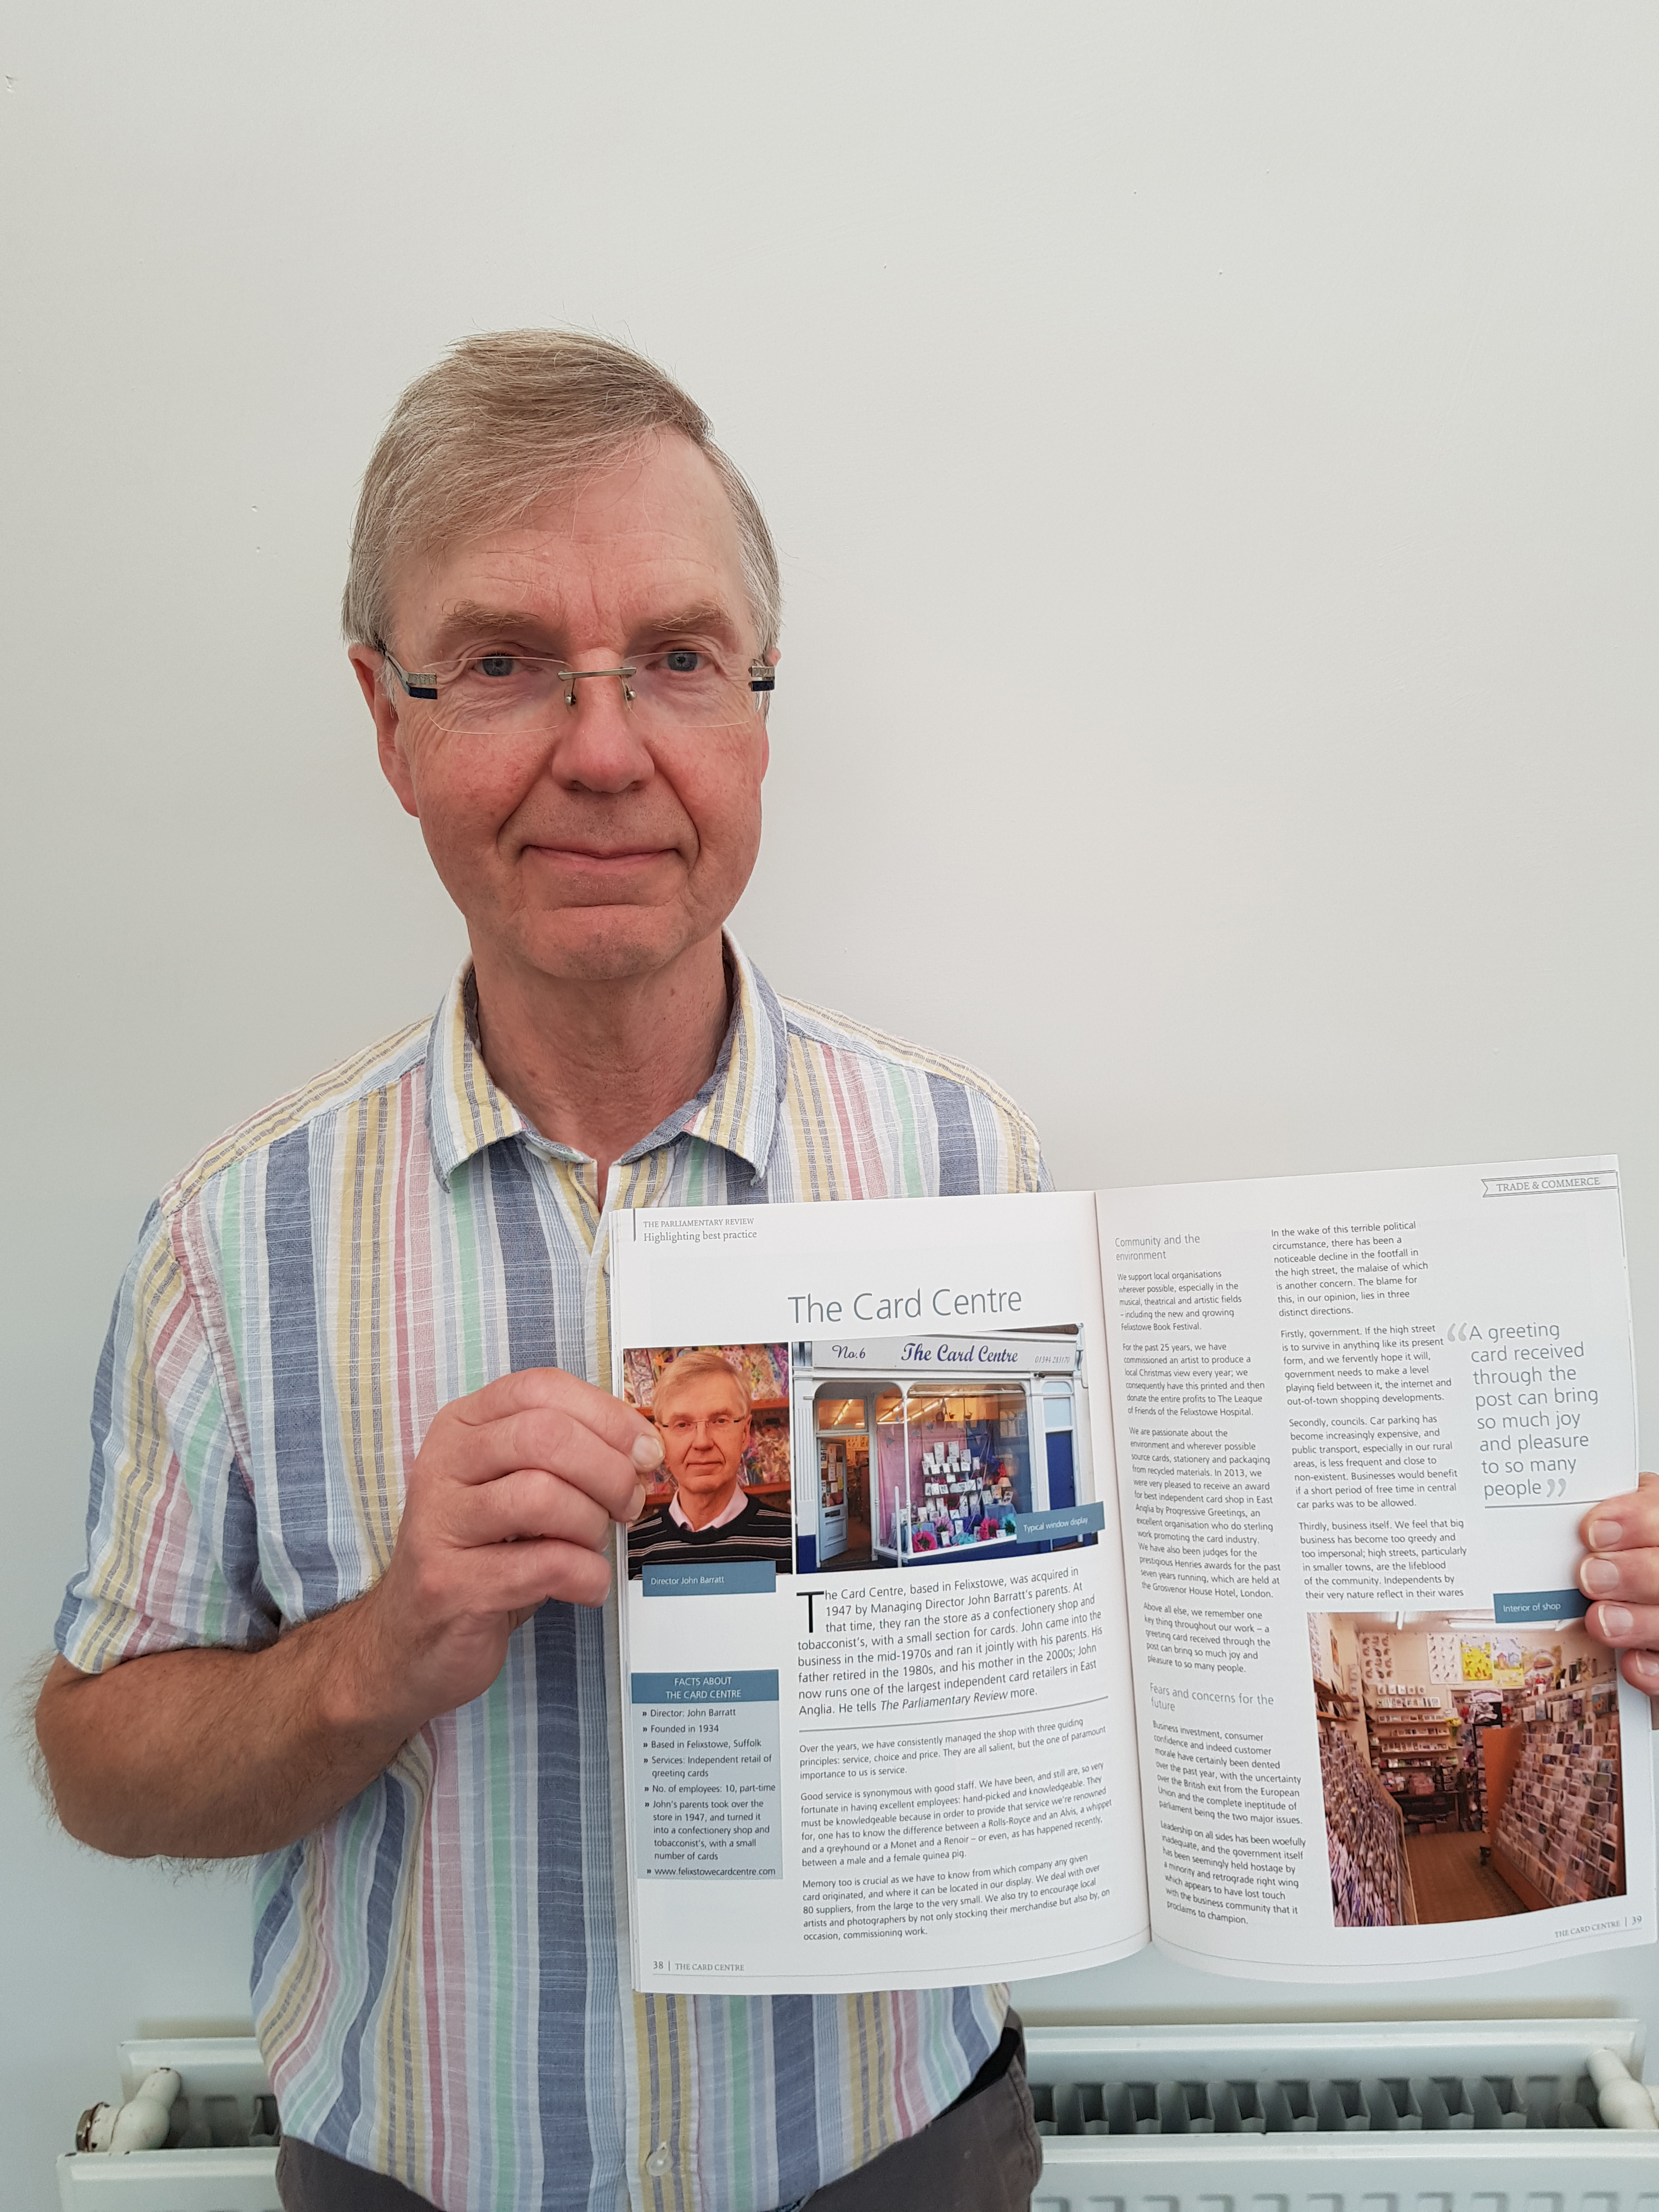 Above: John Barratt, md of The Card Centre in Felixstowe made his feelings known in an article in the Parliamentary Review last September.